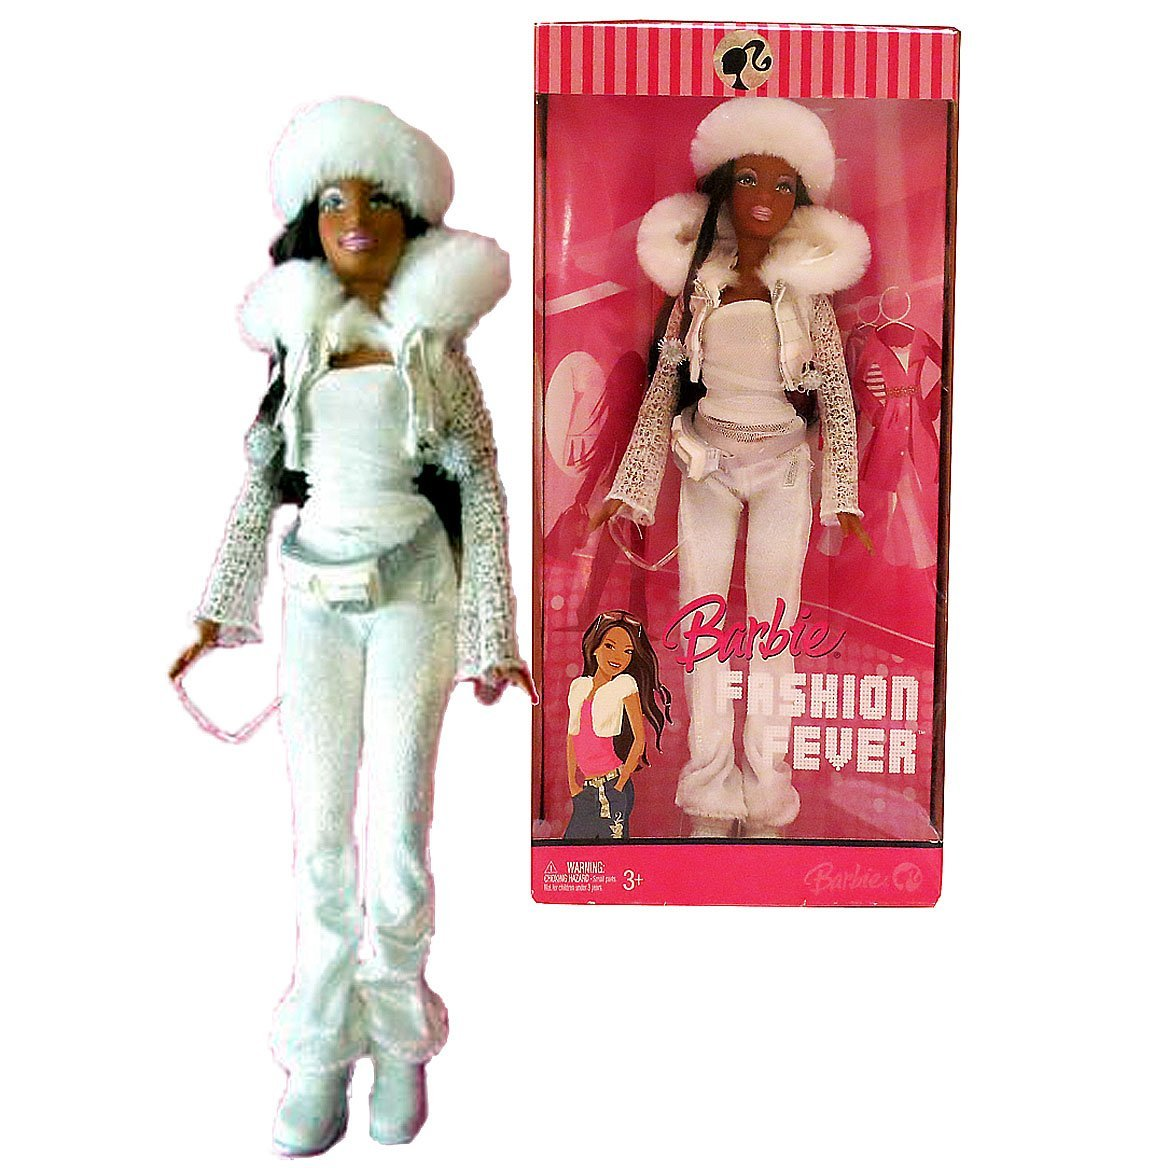 Mattel Year 2006 Barbie Fashion Fever Series 12 Inch Tall Doll Set - Sassy, Smart and Cool NIKKI (L3327) in White Jacket with Faux Fur Collar Plus Faux Fur Hat, Pocket Belt, White Velvet Pants, Shoes, Sunglasses and Purse